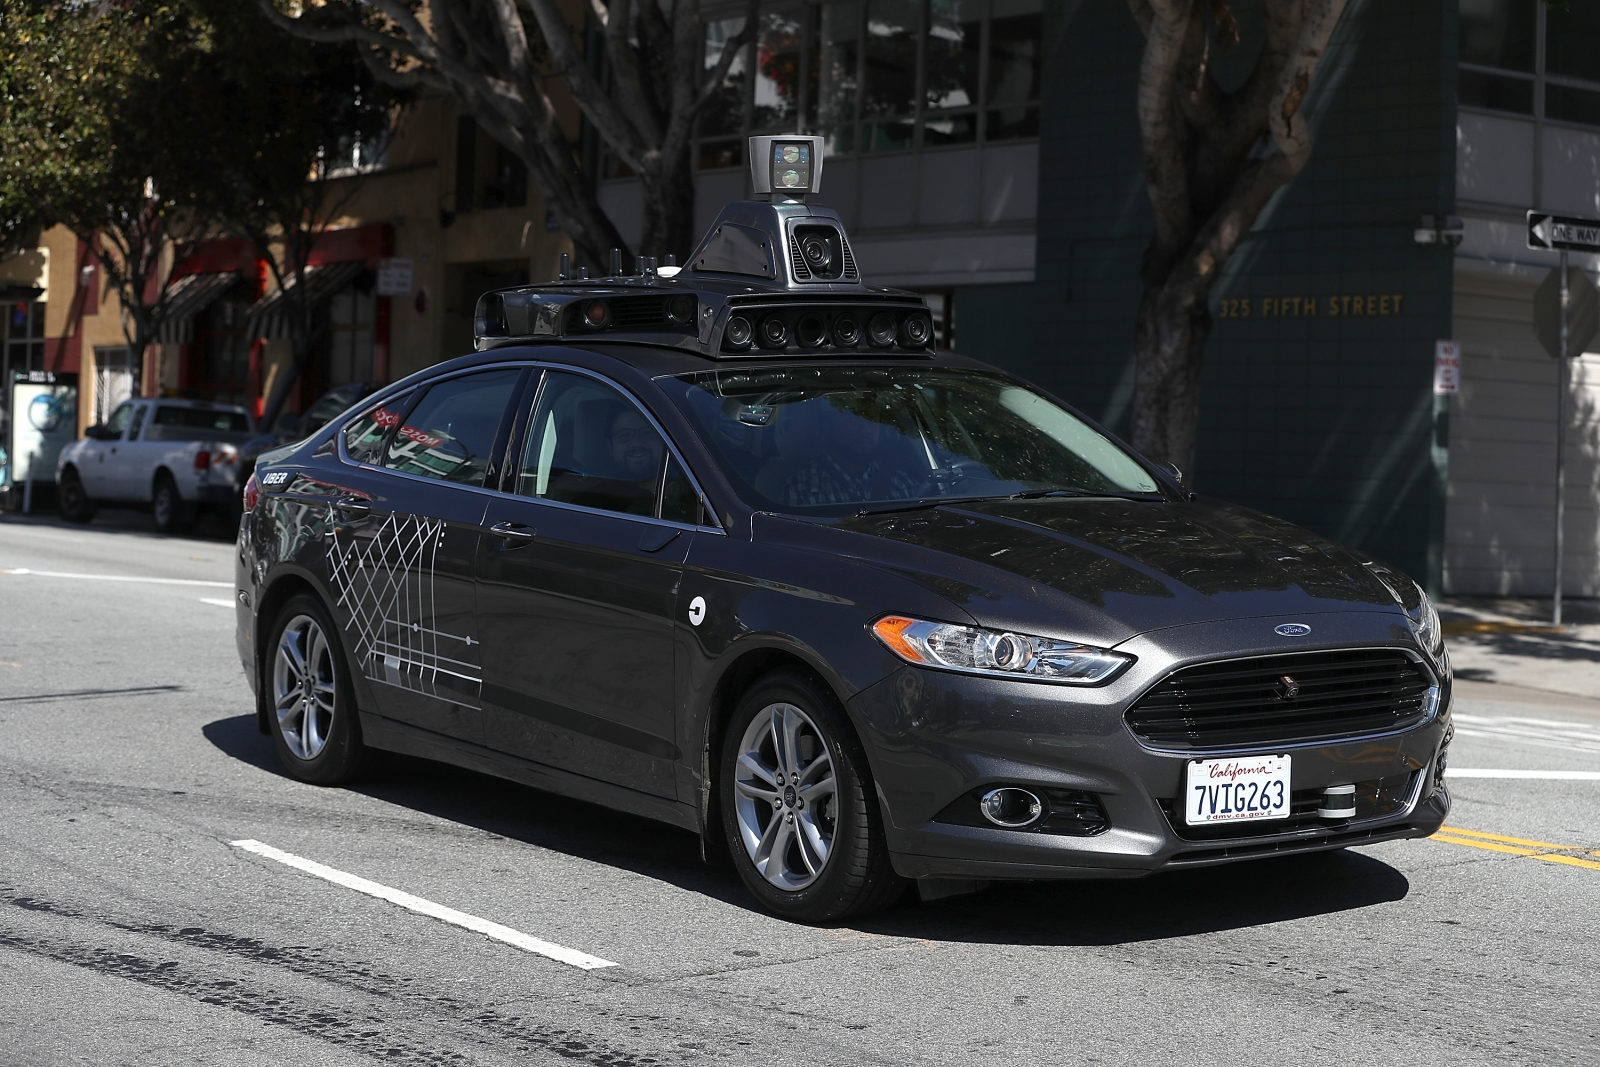 Researchers devised new way to test self-drivingcars